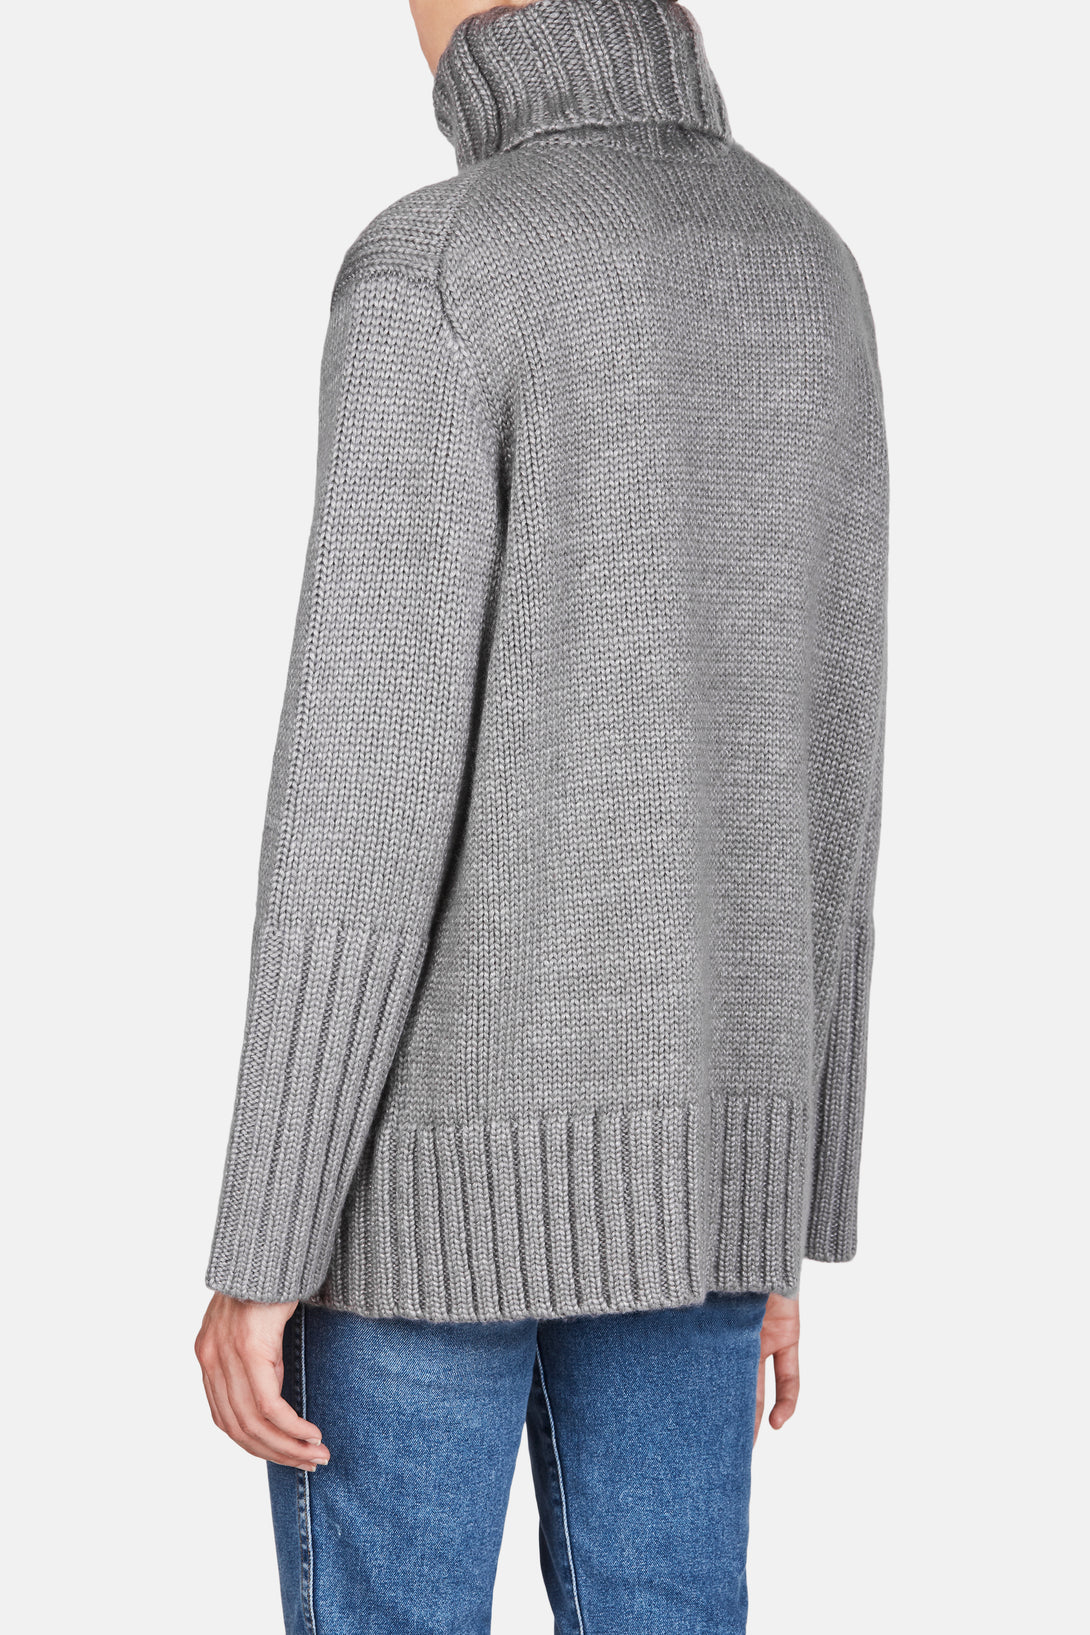 c6210941d5a Knit 44 Oversized Rollneck Sweater - Dove Grey